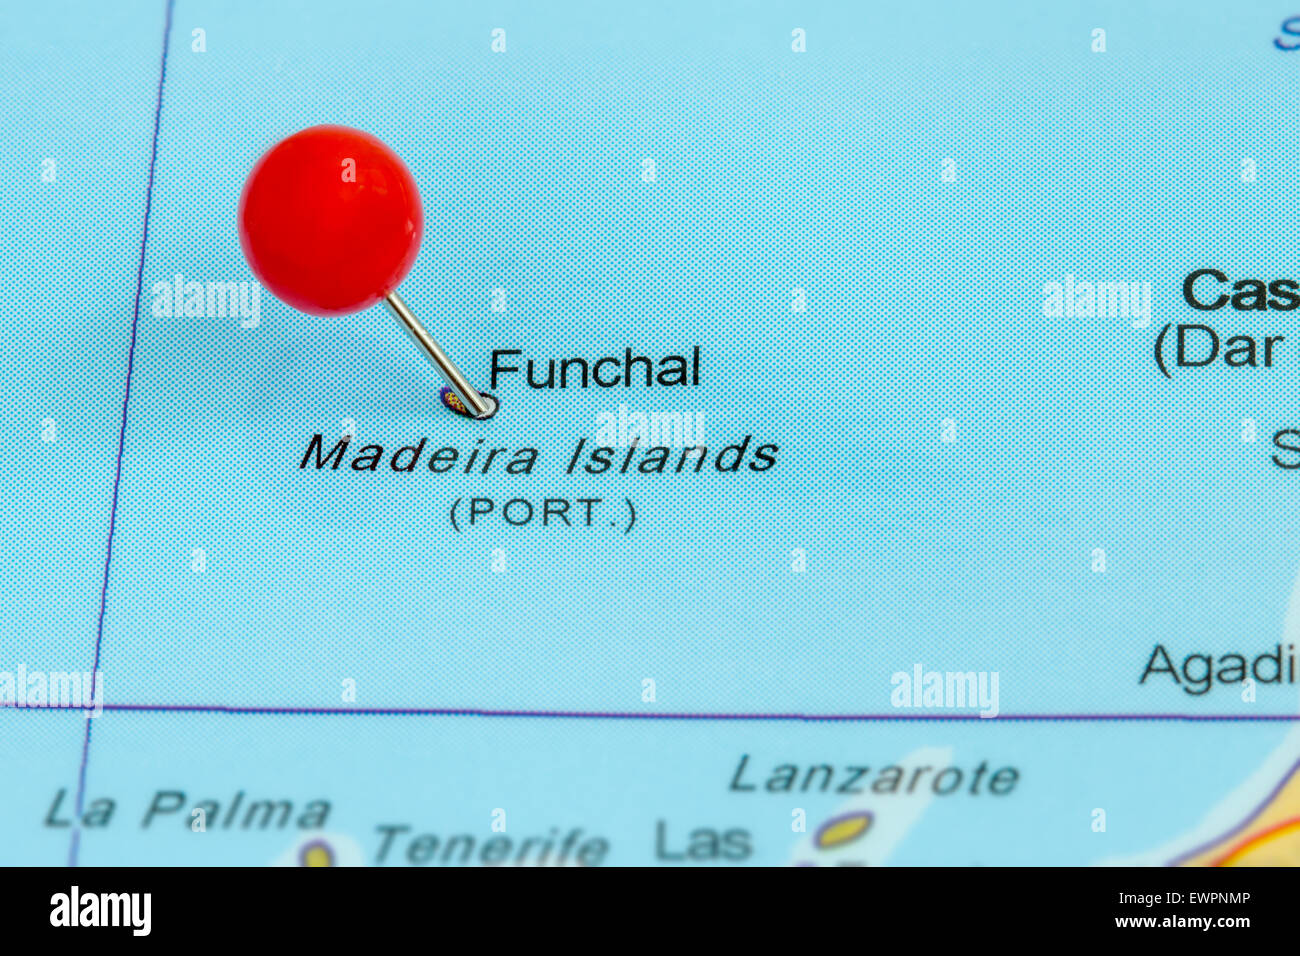 Close-up of a red pushpin on a map of Funchal, Madeira Islands, Portugal - Stock Image